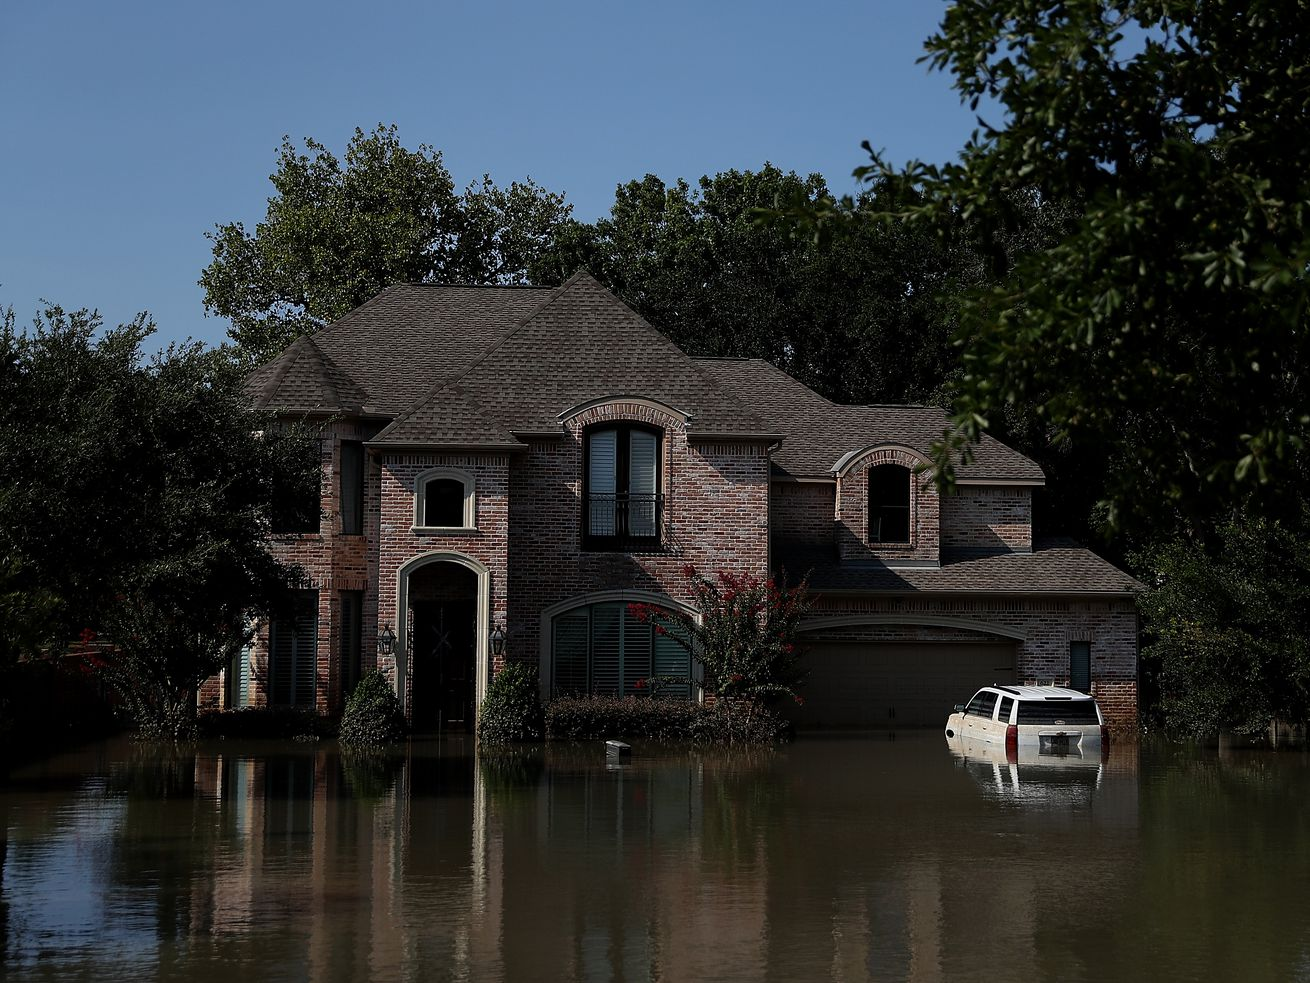 Floodwaters surround a home on September 6, 2017 in Houston, over a week after Hurricane Harvey hit Southern Texas.